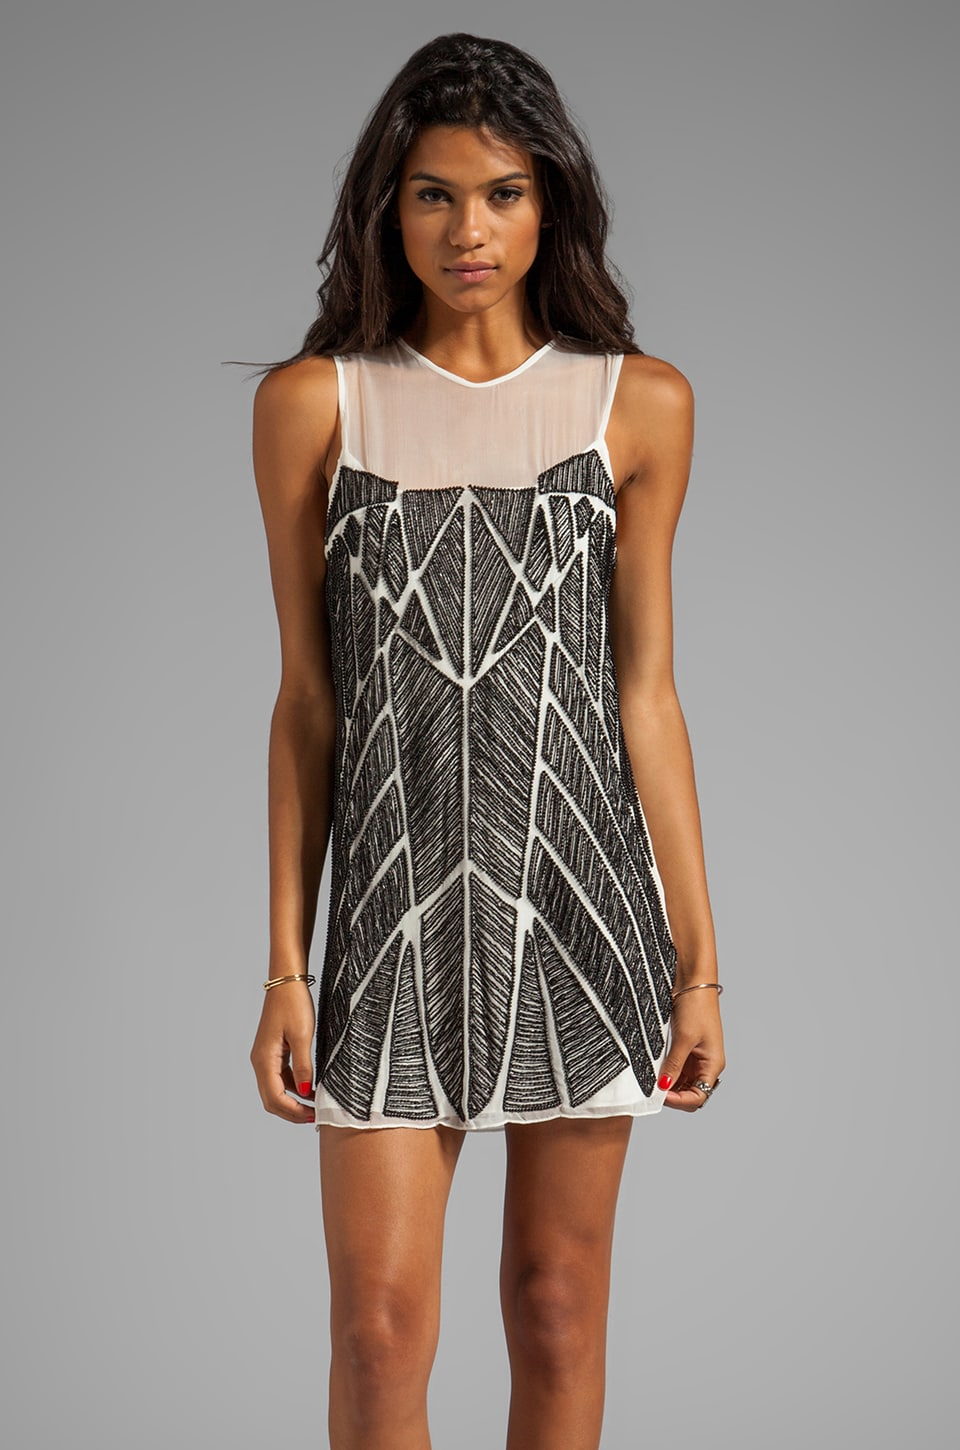 Parker Allegra Dress in Black/White